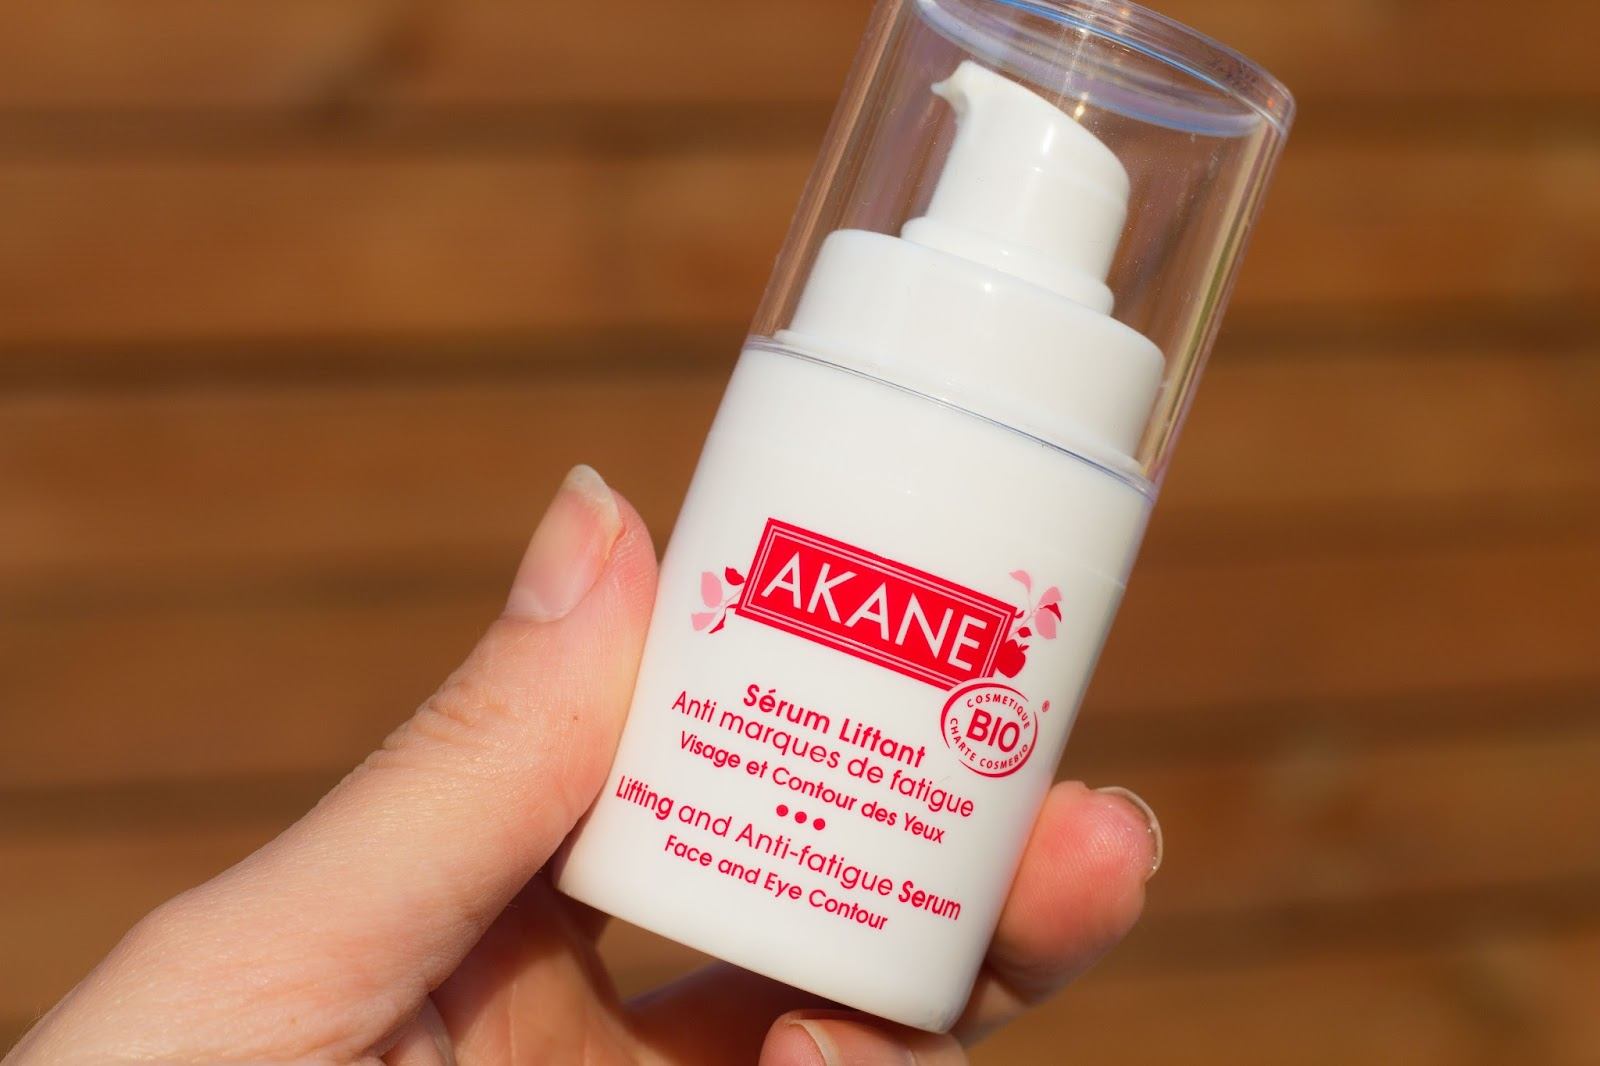 akane-routine-naturelle-bio-serum-liftant